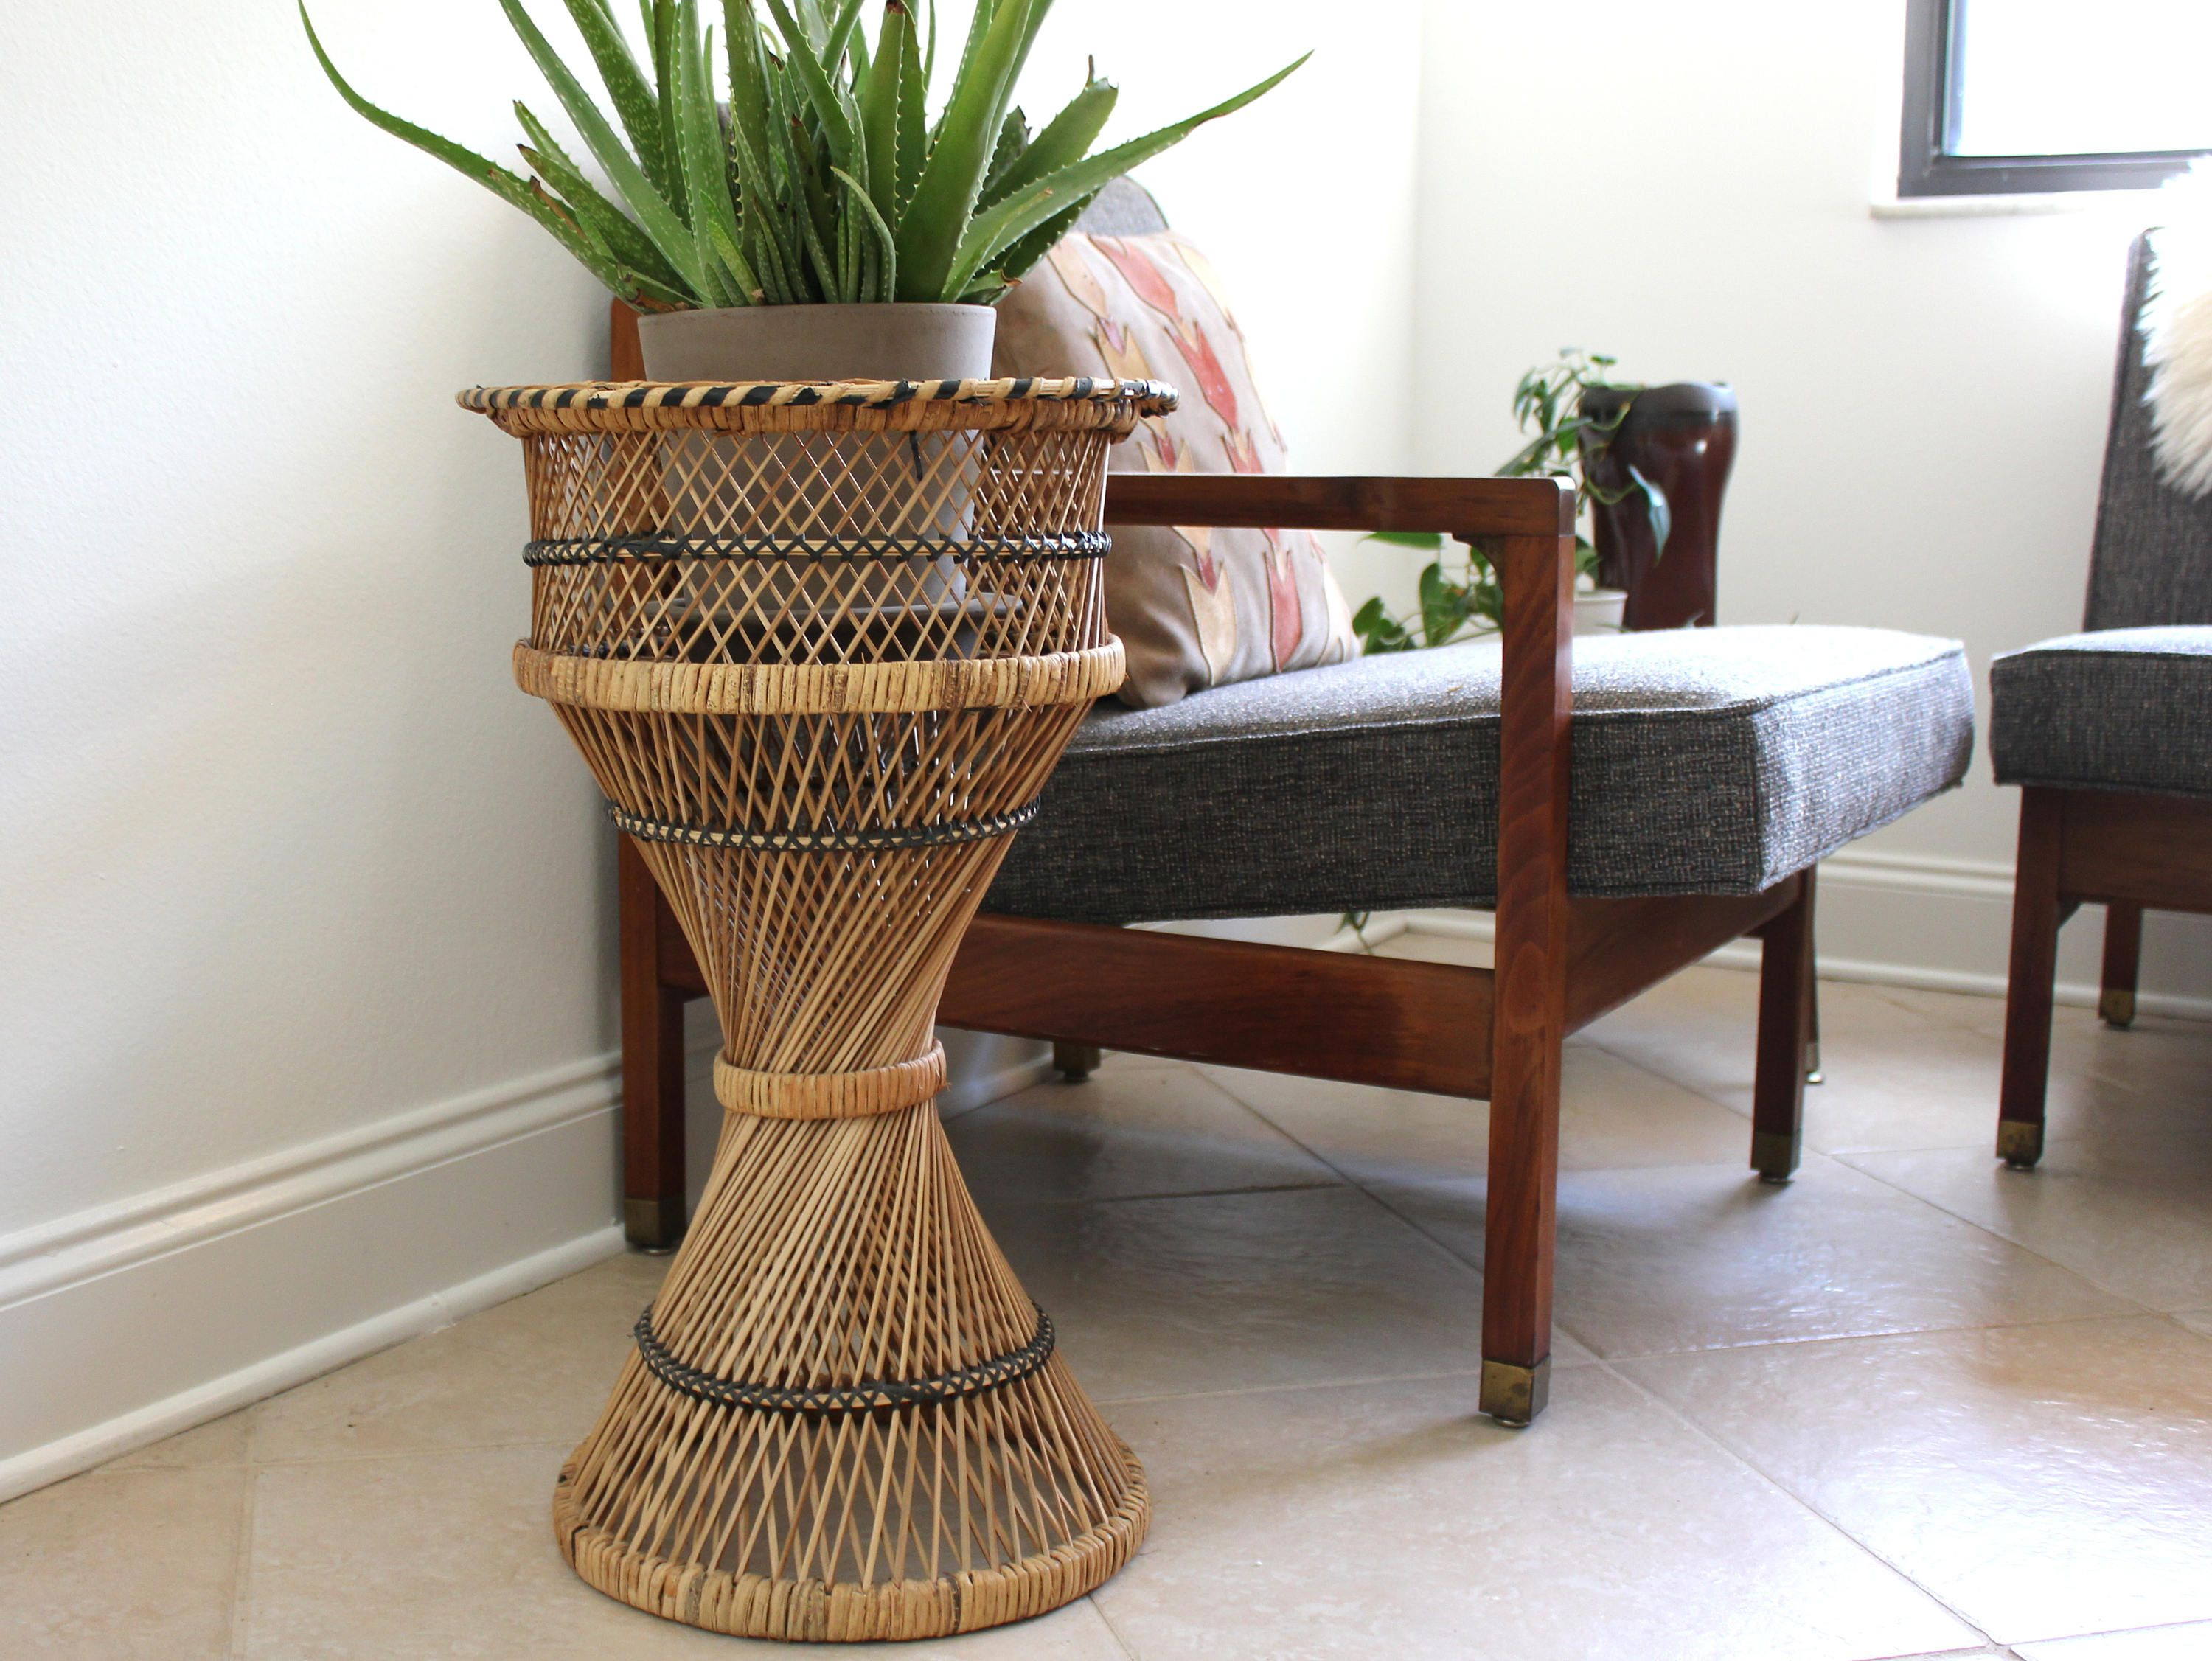 Rattan Pedestal Plant Stand Holder Boho Beach Decor By Kollektive On Etsy